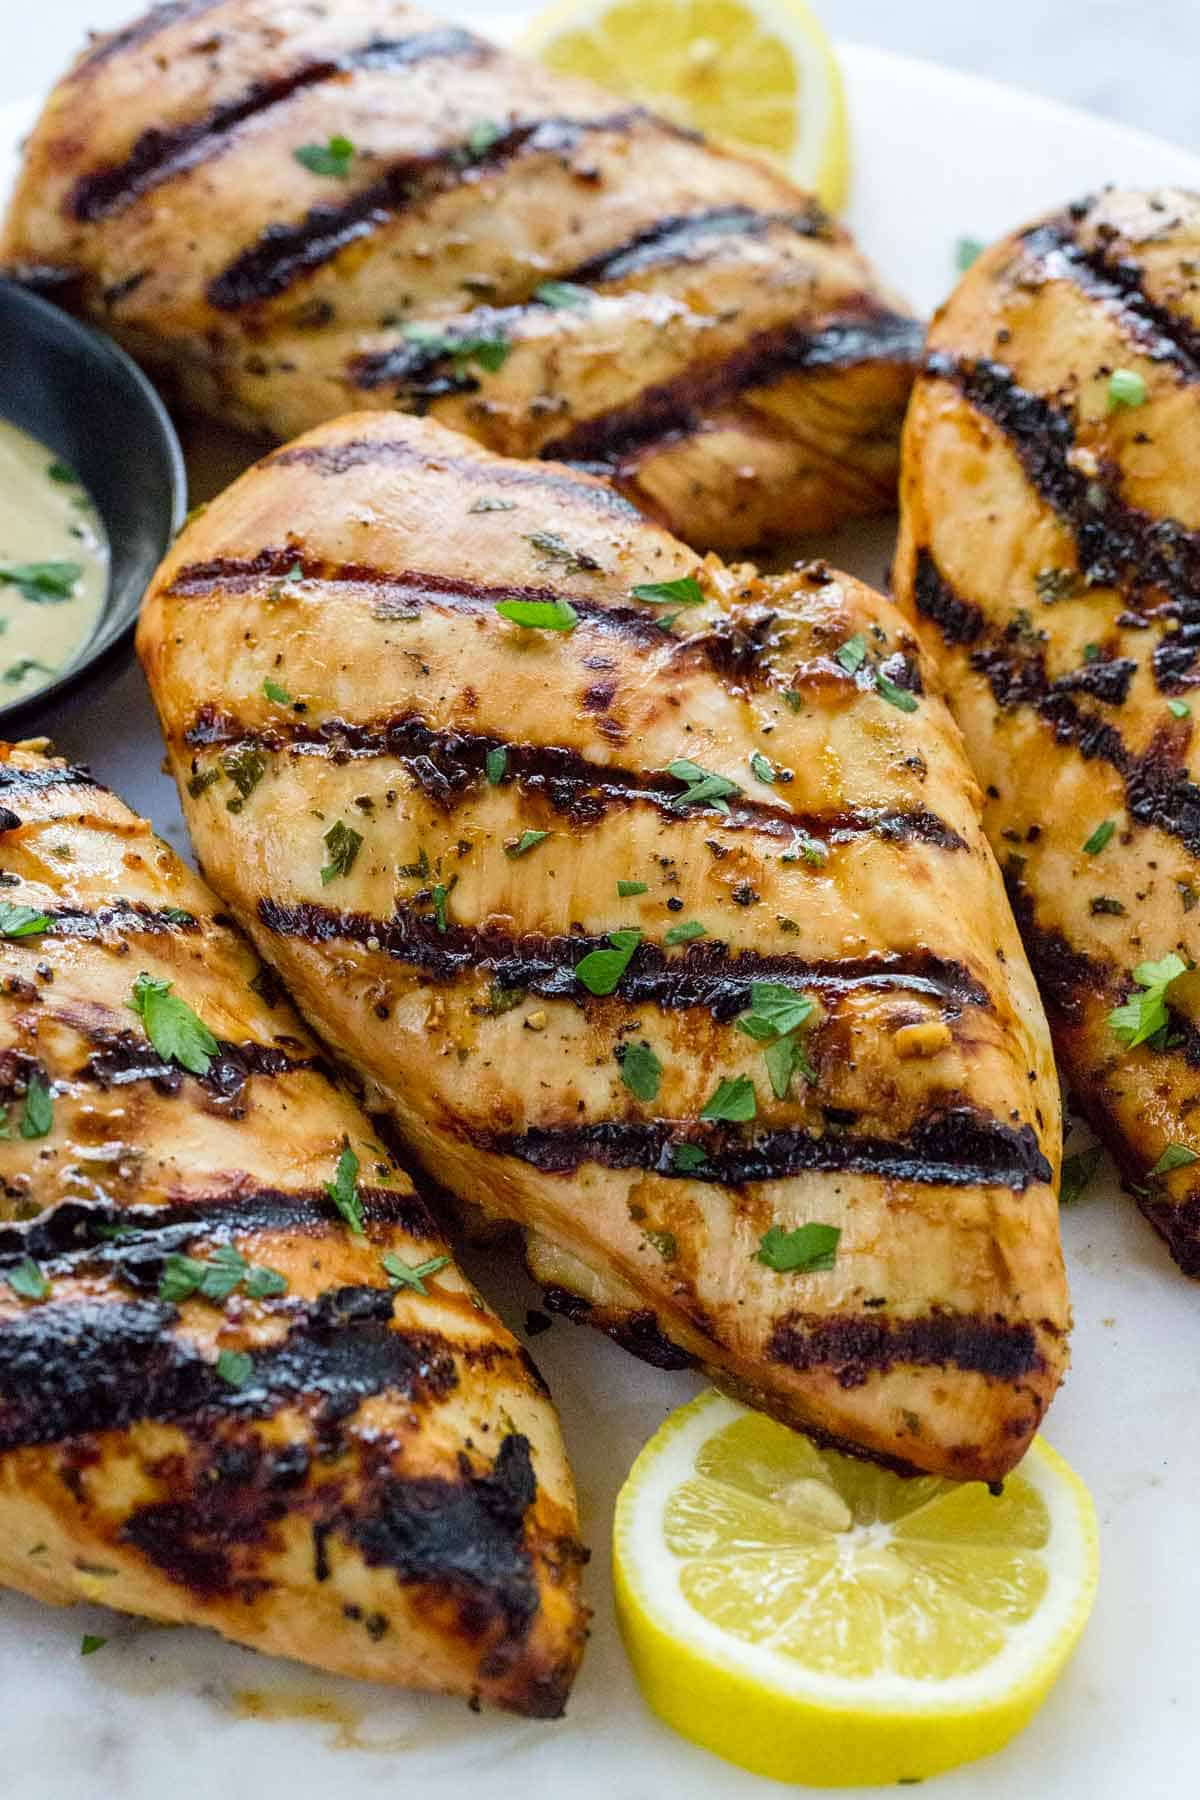 Grilled chicken breasts served on a plate with lemon